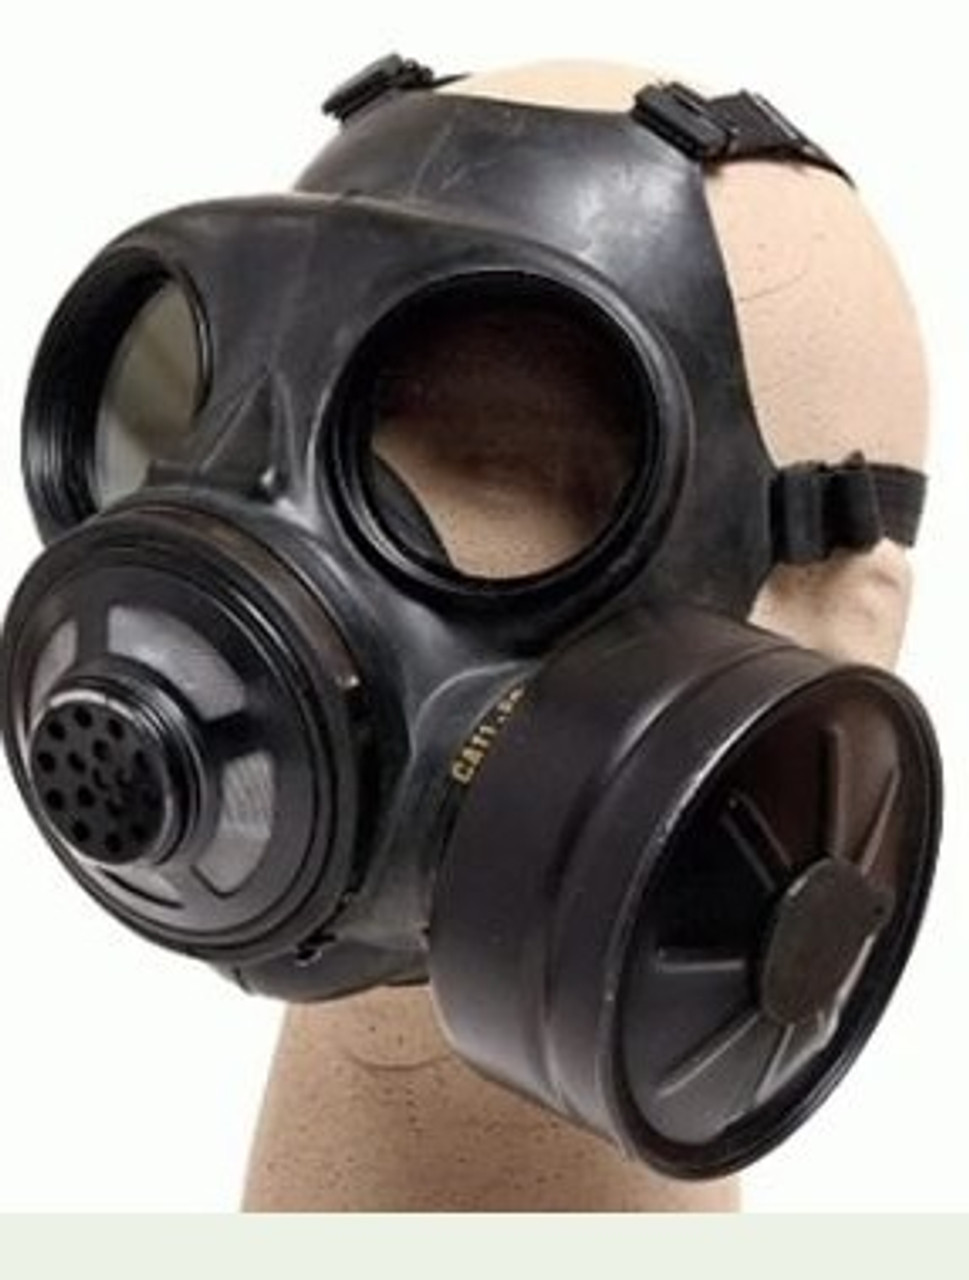 Canadian Armed Forces M69 Gas Mask